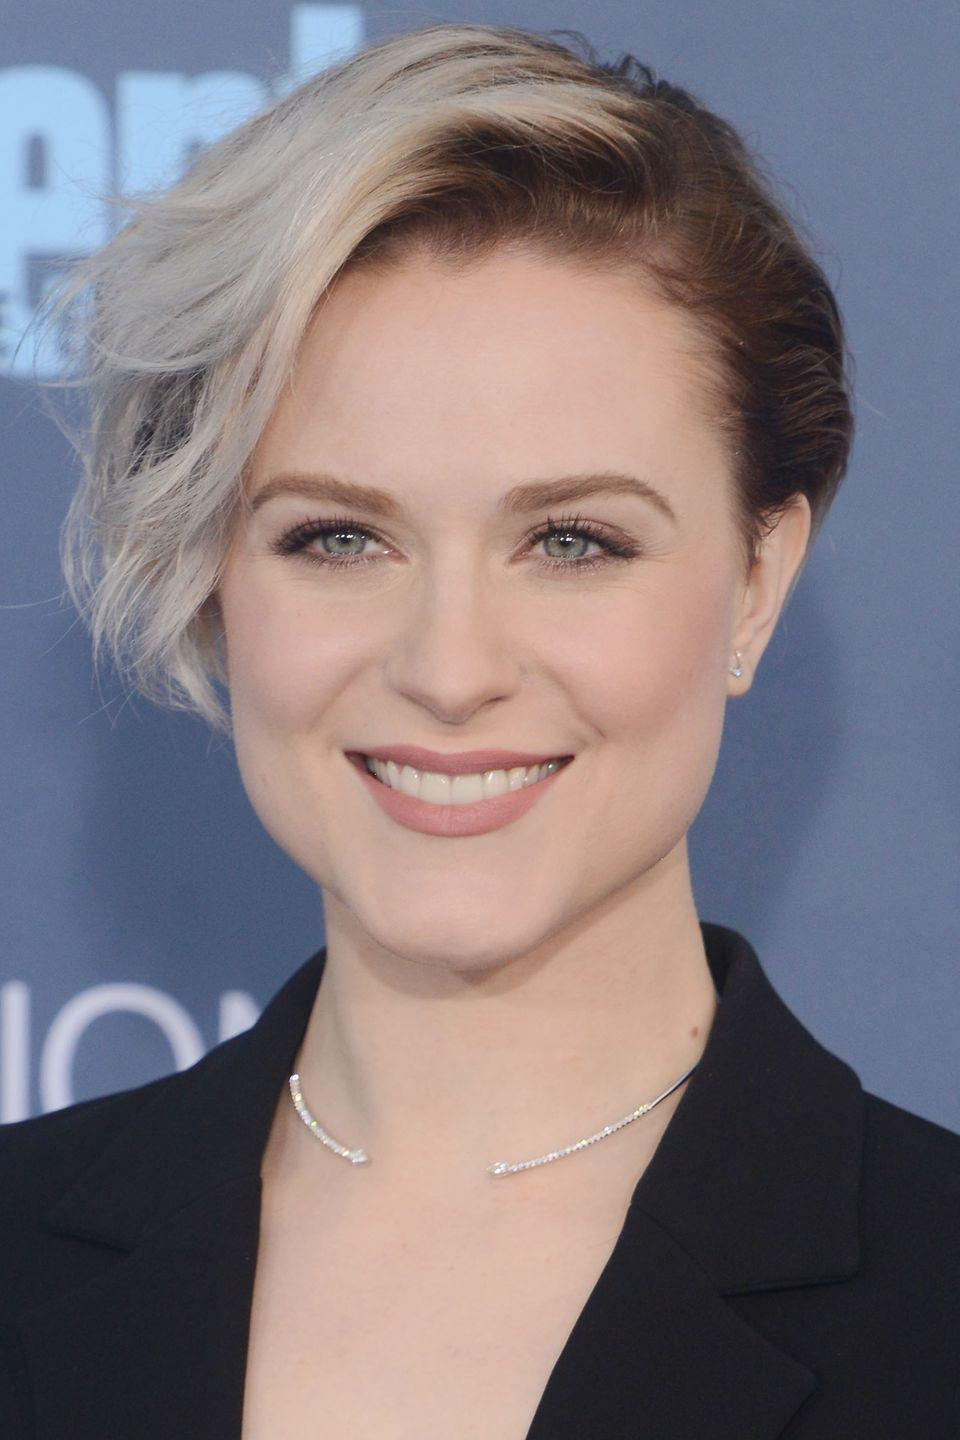 <p>Actress Evan Rachel Wood plays with length and color in her pixie. </p>